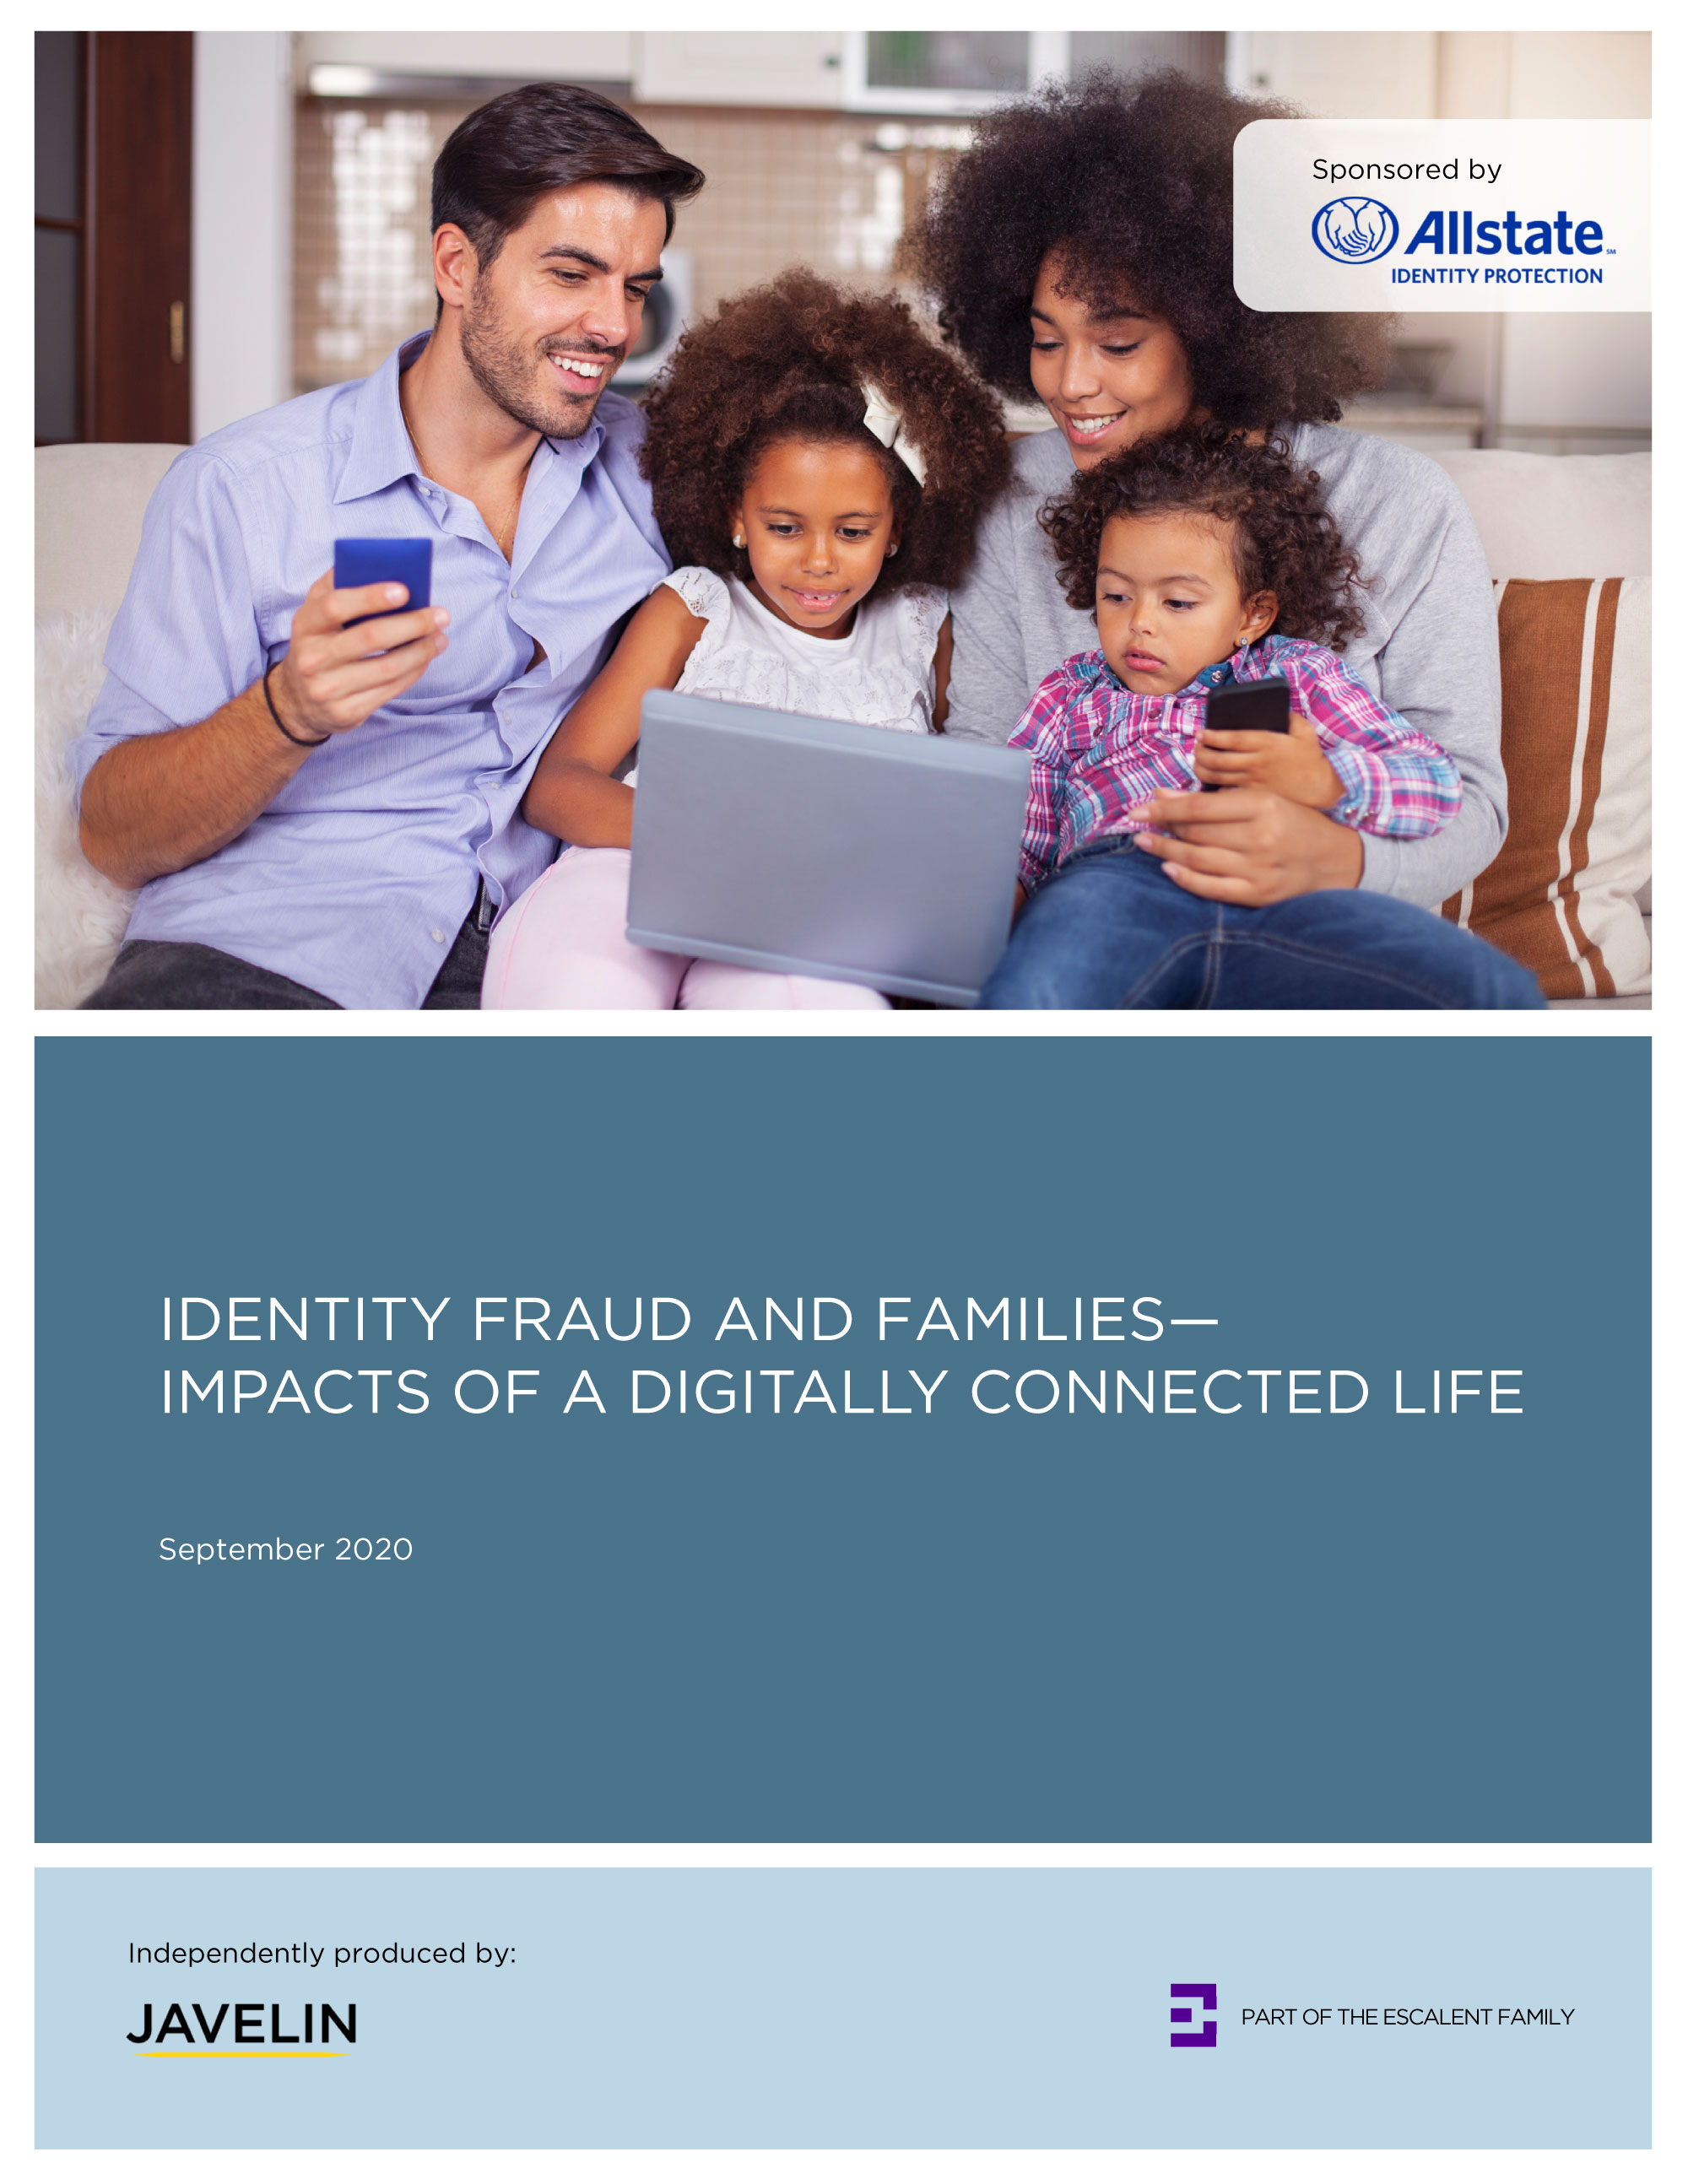 Identity-Fraud-and-Families-0920-Javelin-pg1